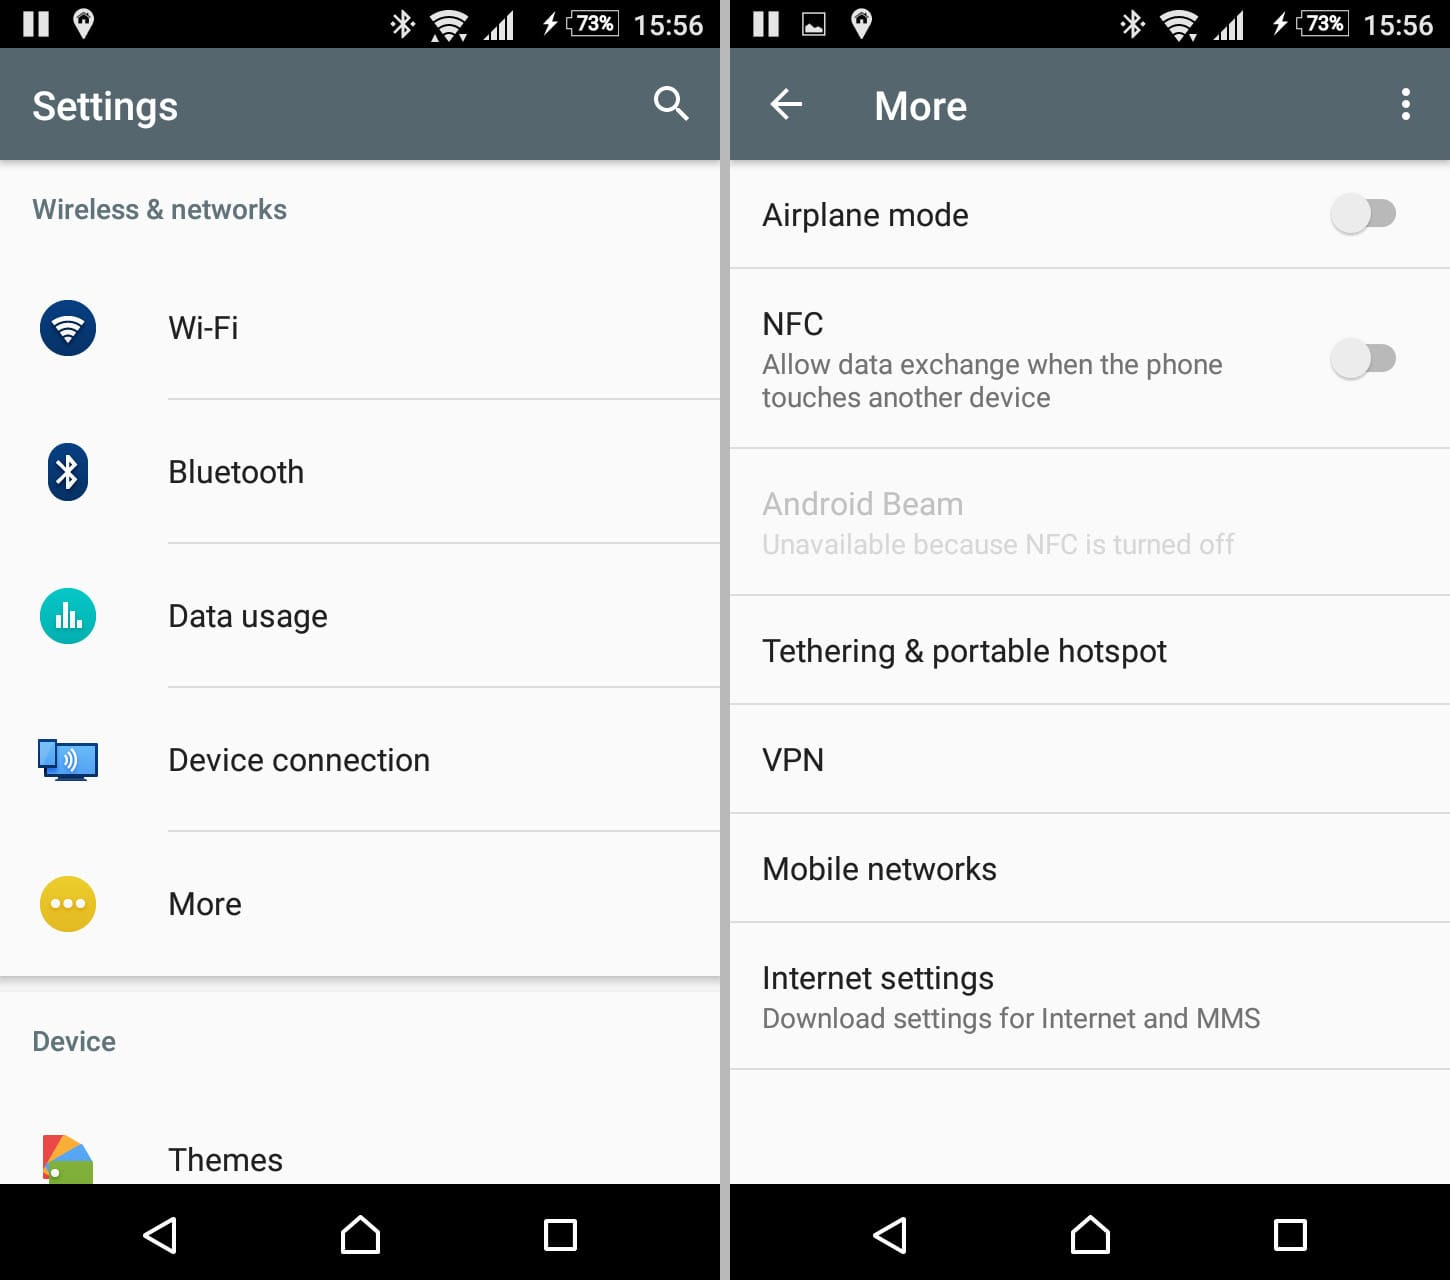 Settings -> More | Always-On VPN with Android